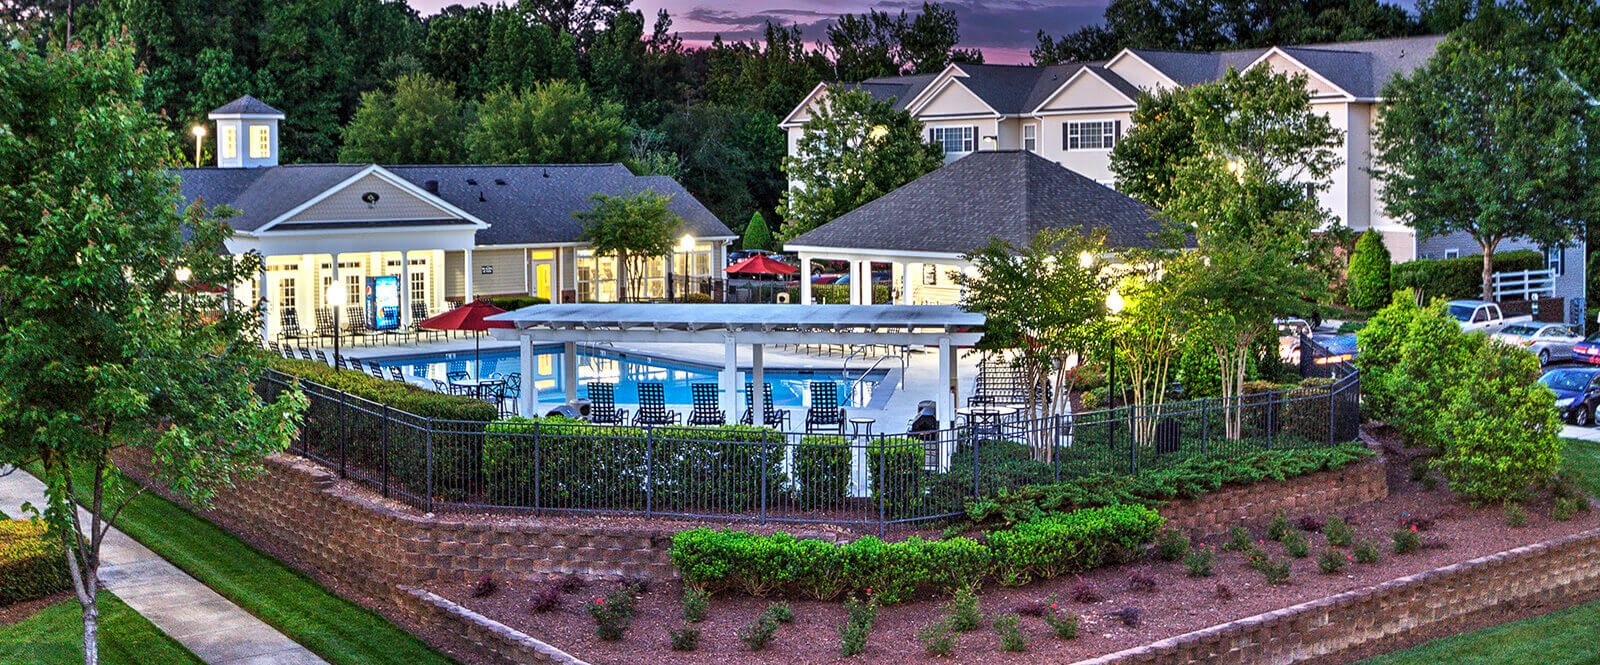 Professionally Maintained Community at Abberly Grove Apartment Homes, Raleigh